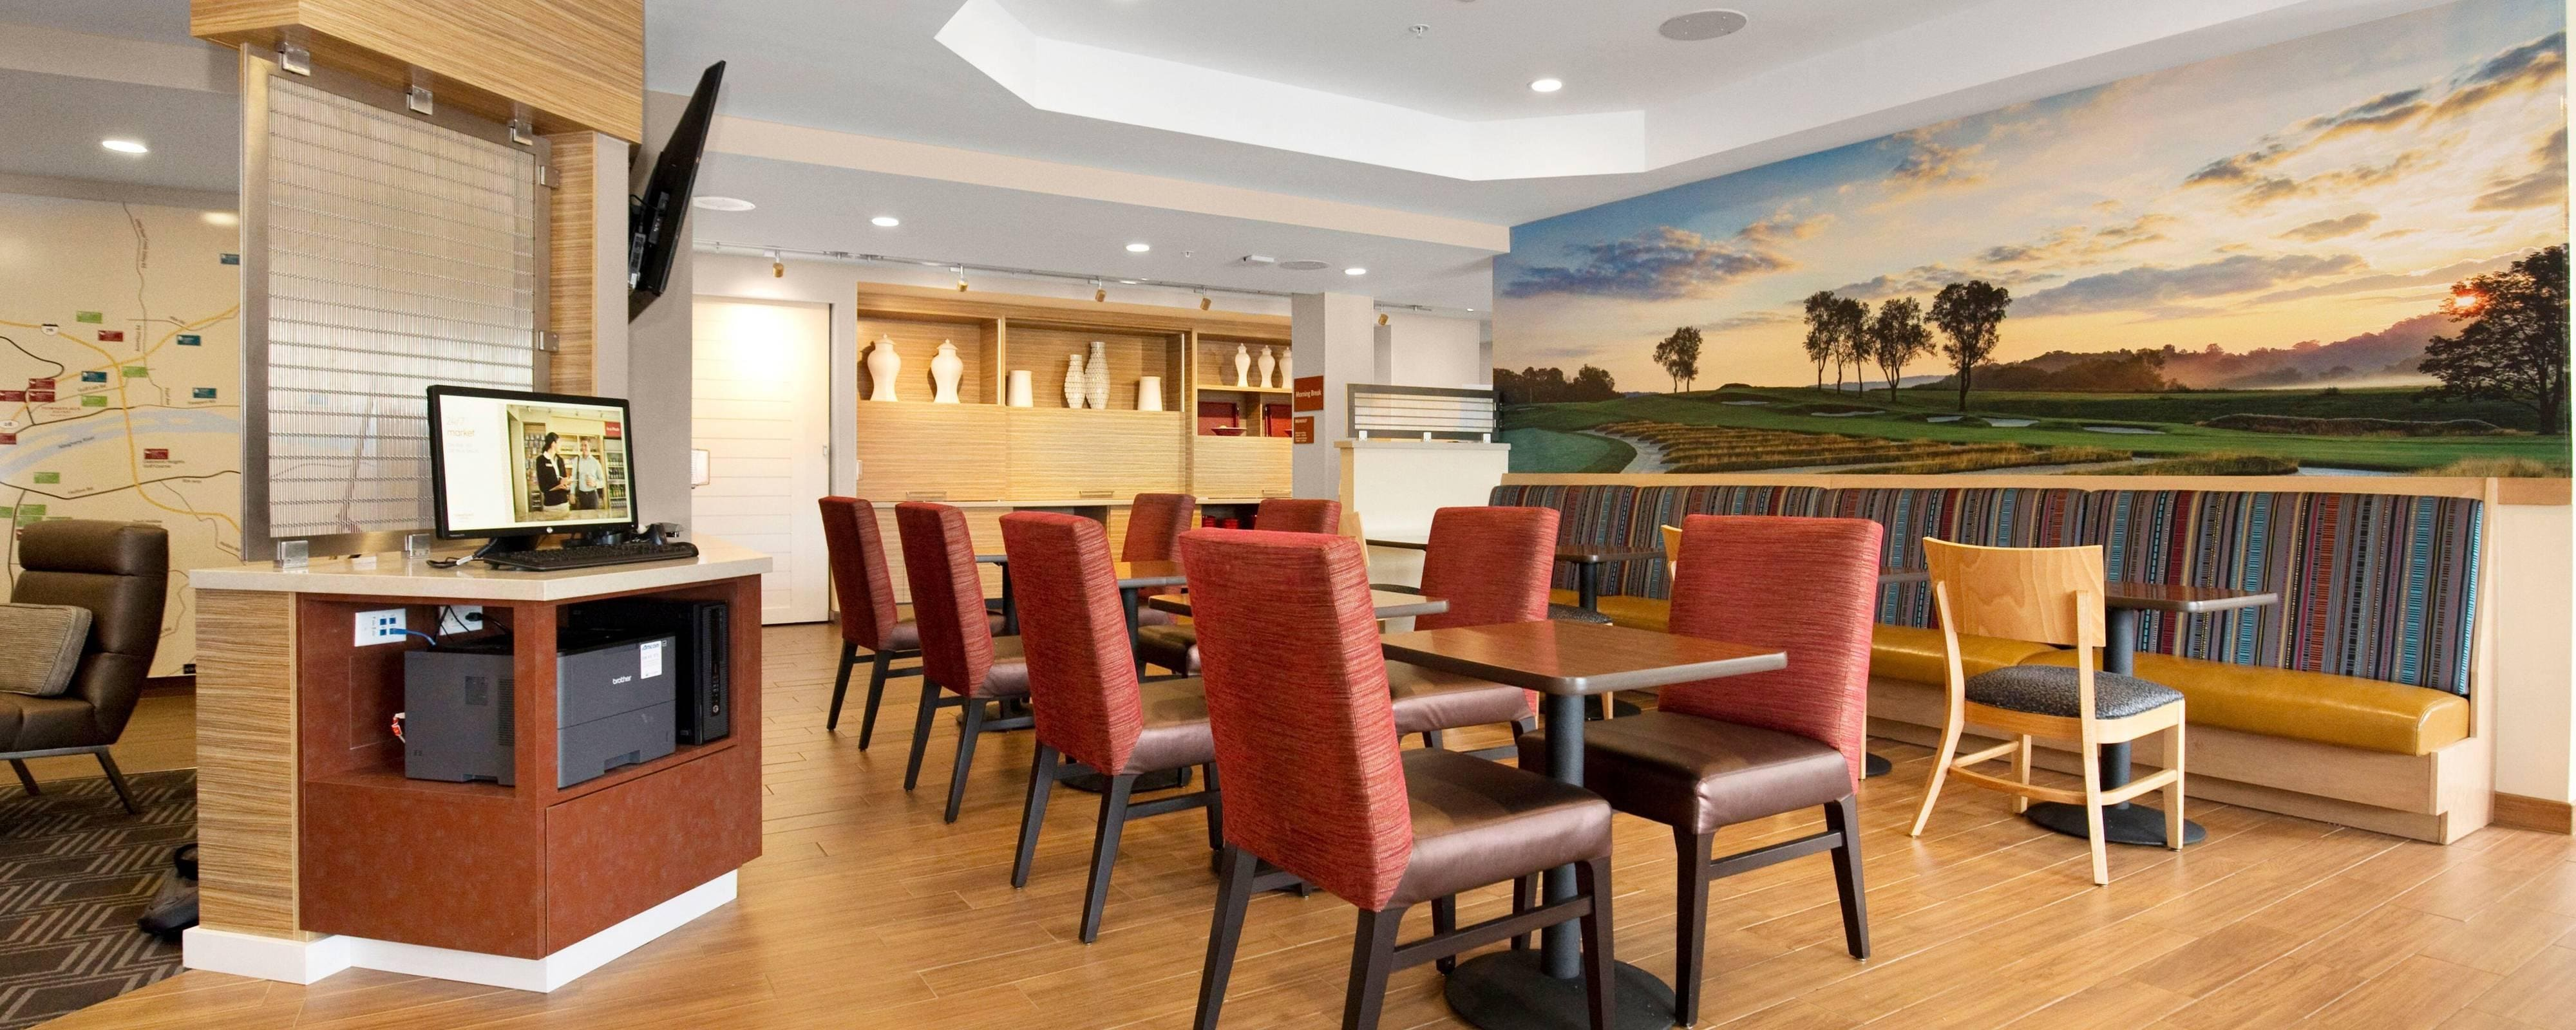 Pittsburgh hotel restaurants | TownePlace Suites Pittsburgh ...